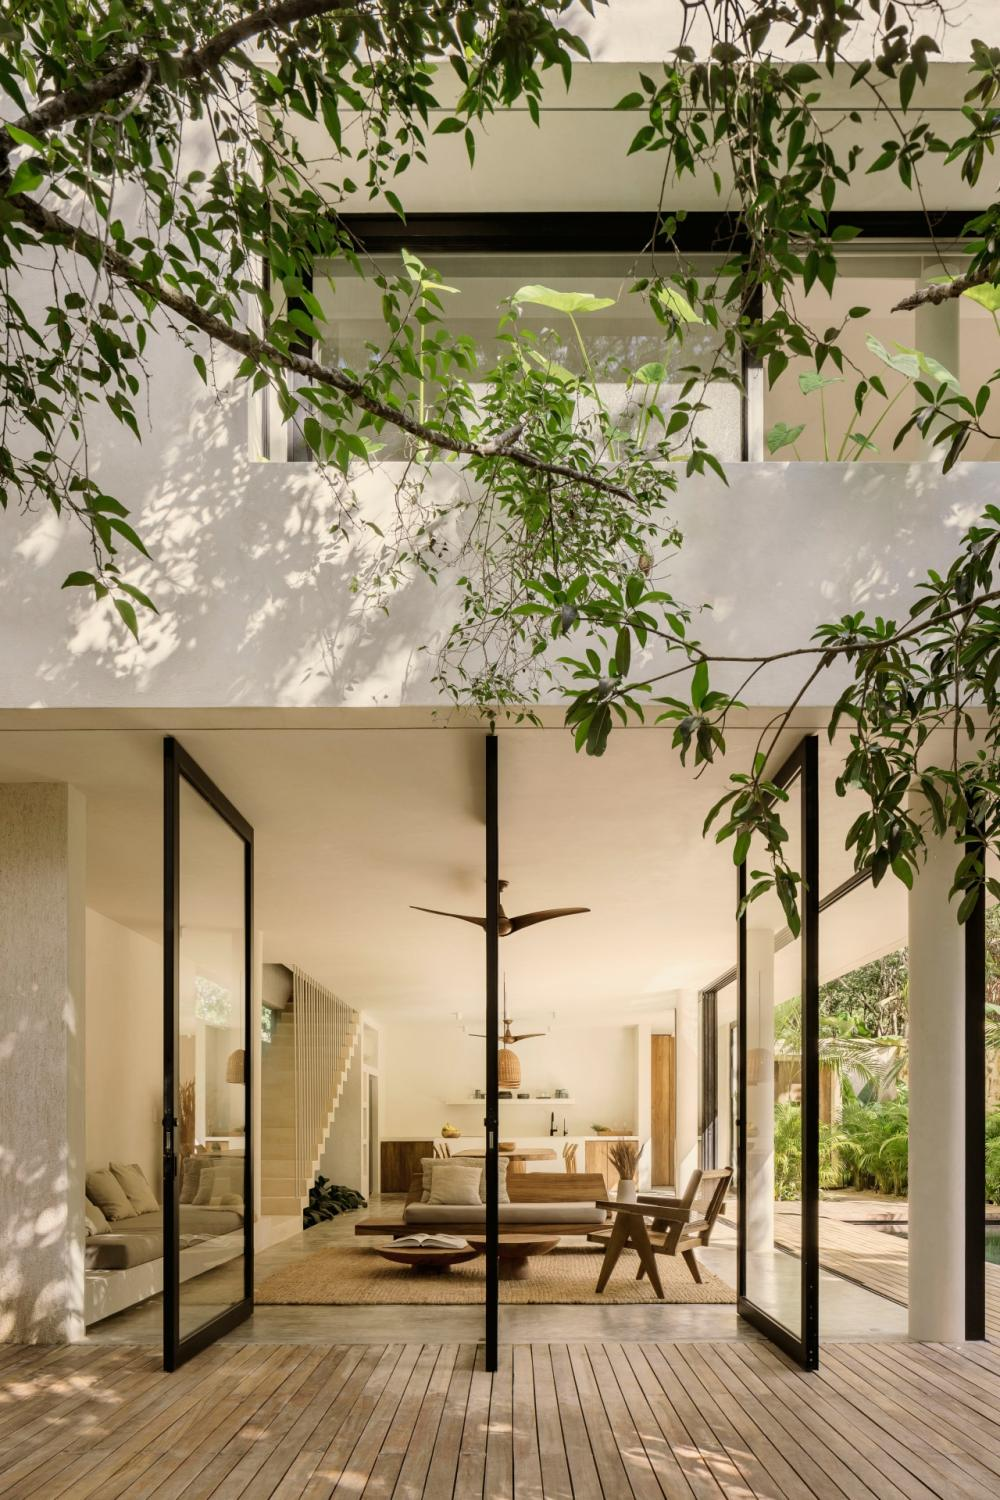 House tour: a peaceful, tropical holiday home in the trendy Mexican beach town of Tulum-8.jpg